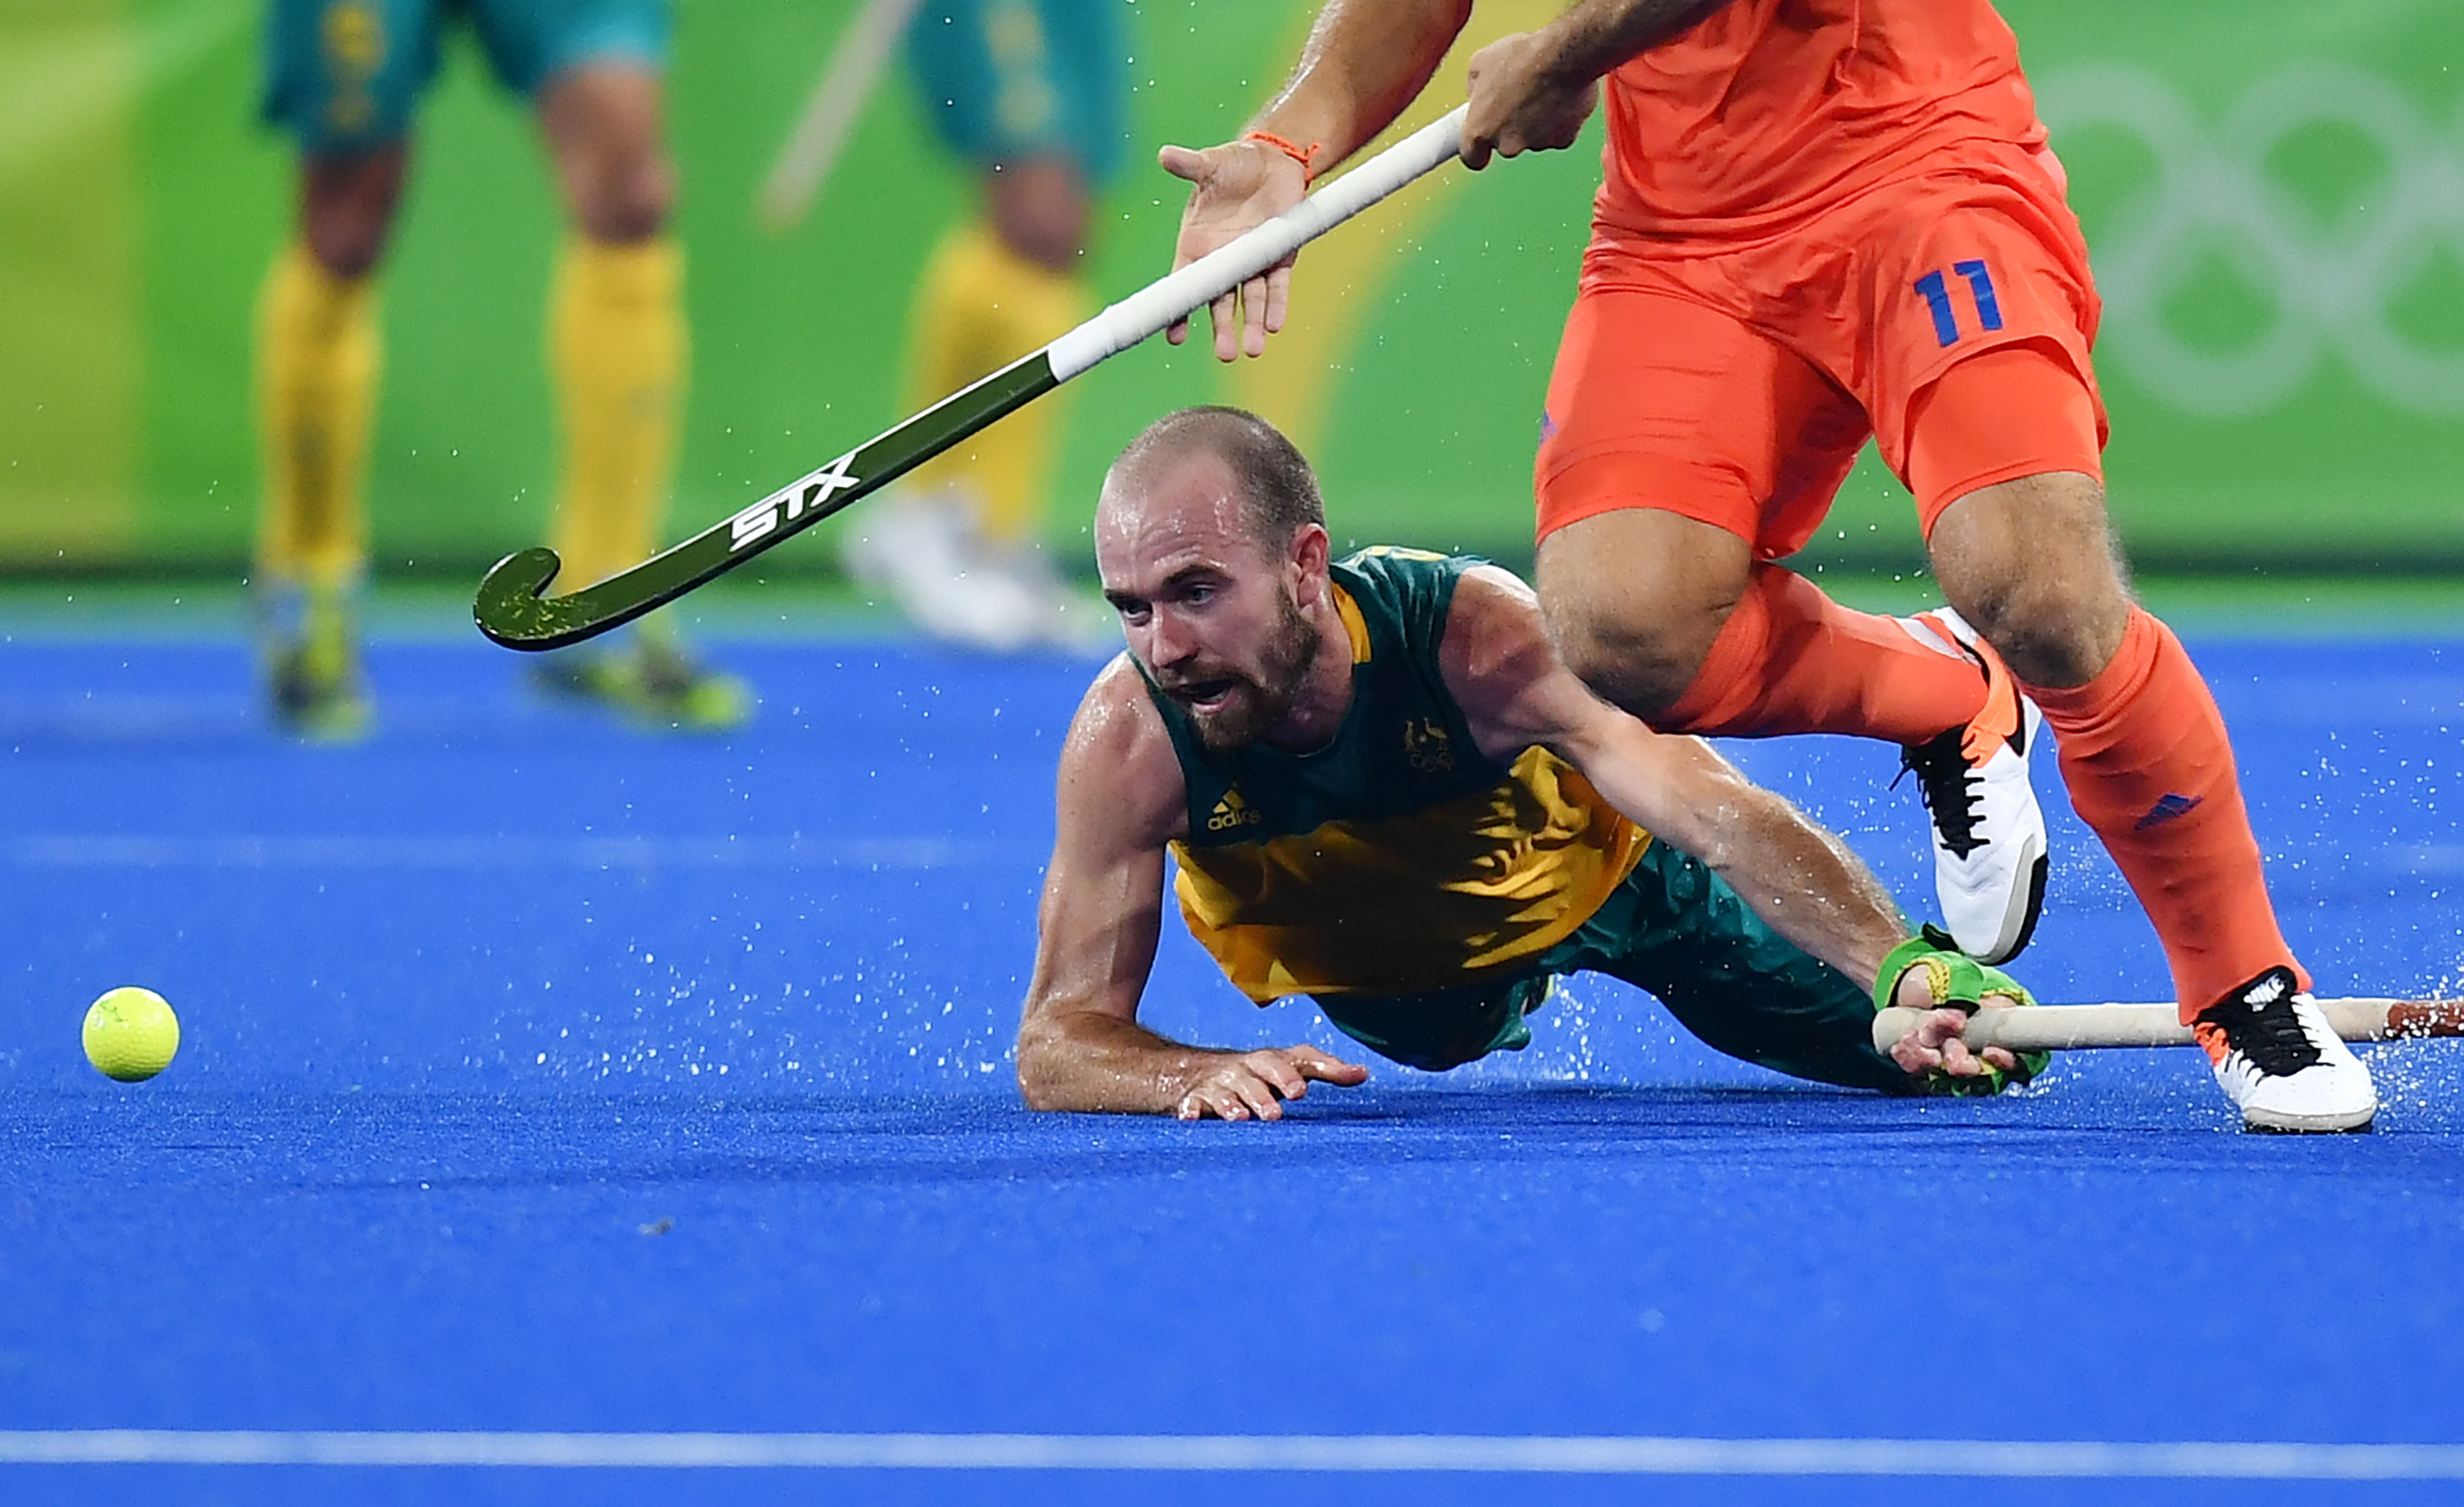 TOPSHOT - Australia's Matthew Swann (L) vies with Netherlands' Jeroen Hertzberger during the men's quarterfinal field hockey Netherlands vs Australia match of the Rio 2016 Olympics Games at the Olympic Hockey Centre in Rio de Janeiro on August 14, 2016. / AFP / MANAN VATSYAYANA (Photo credit should read MANAN VATSYAYANA/AFP/Getty Images)